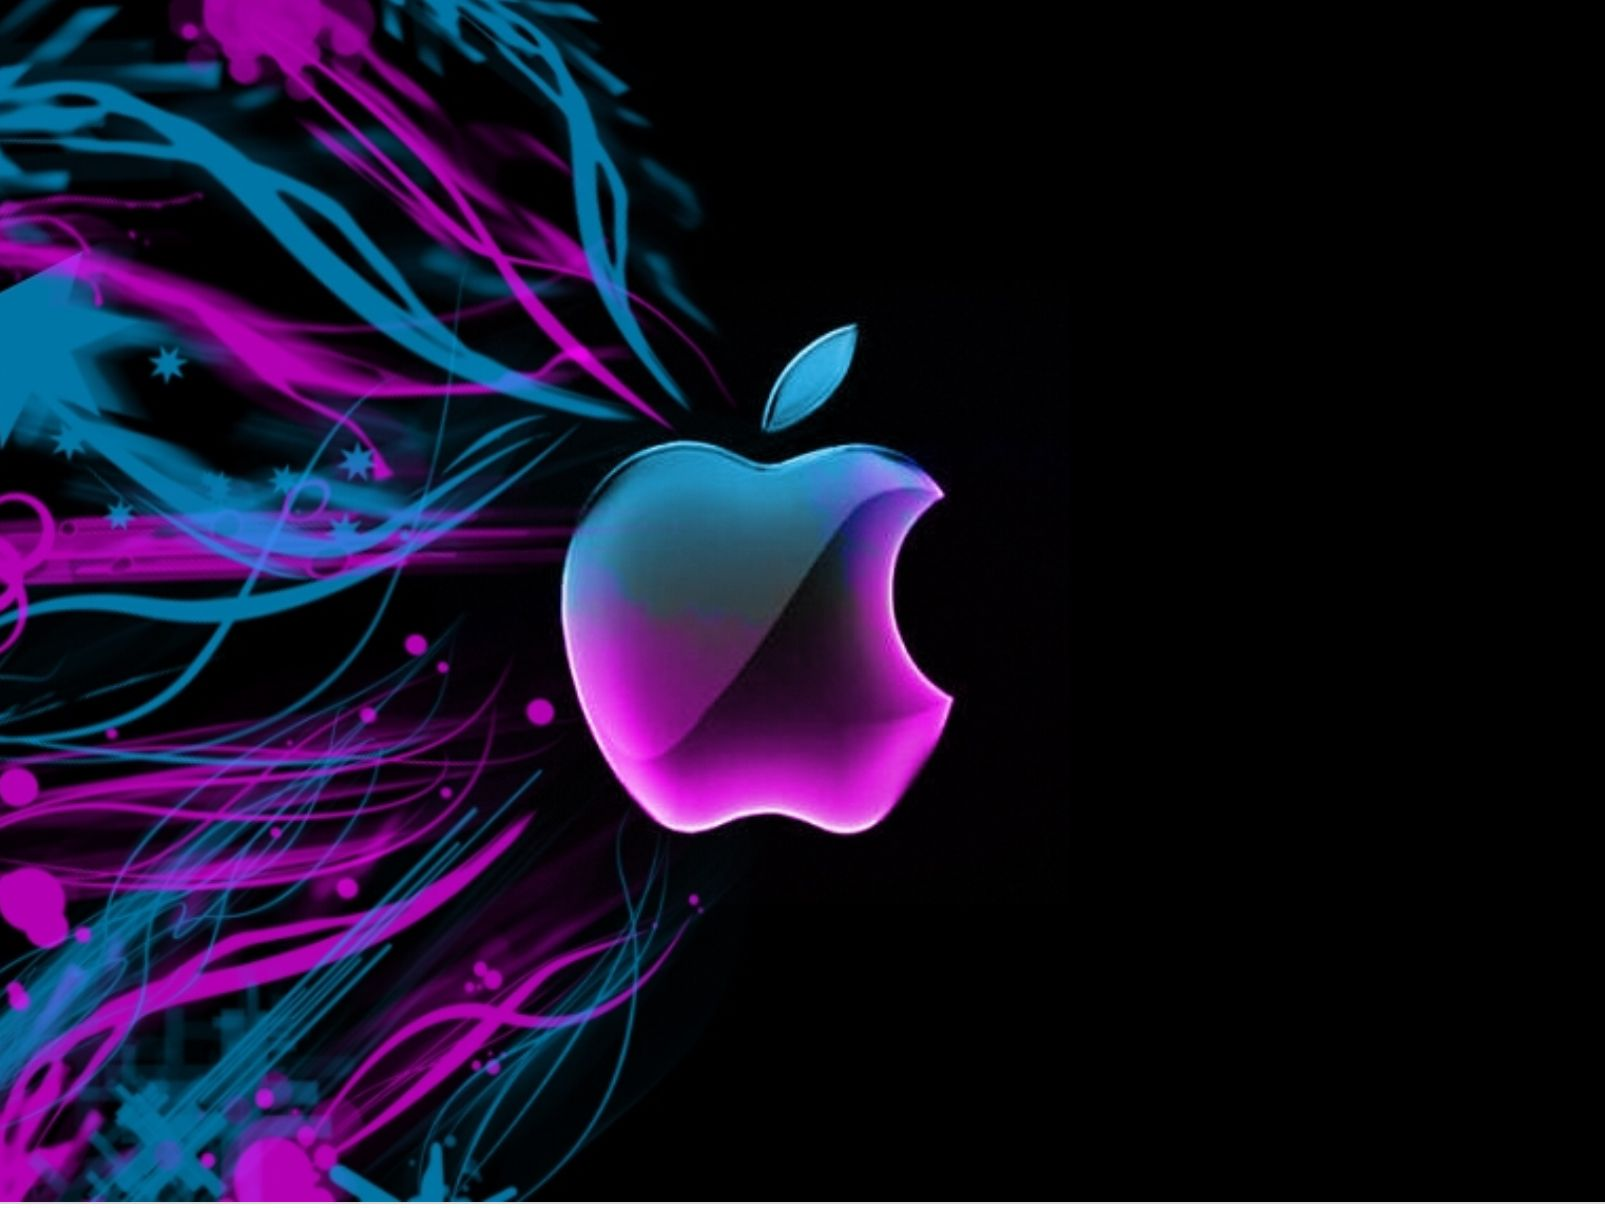 Pin By Ava On Cool Pics Apple Background Apple Logo Wallpaper Macbook Air Wallpaper